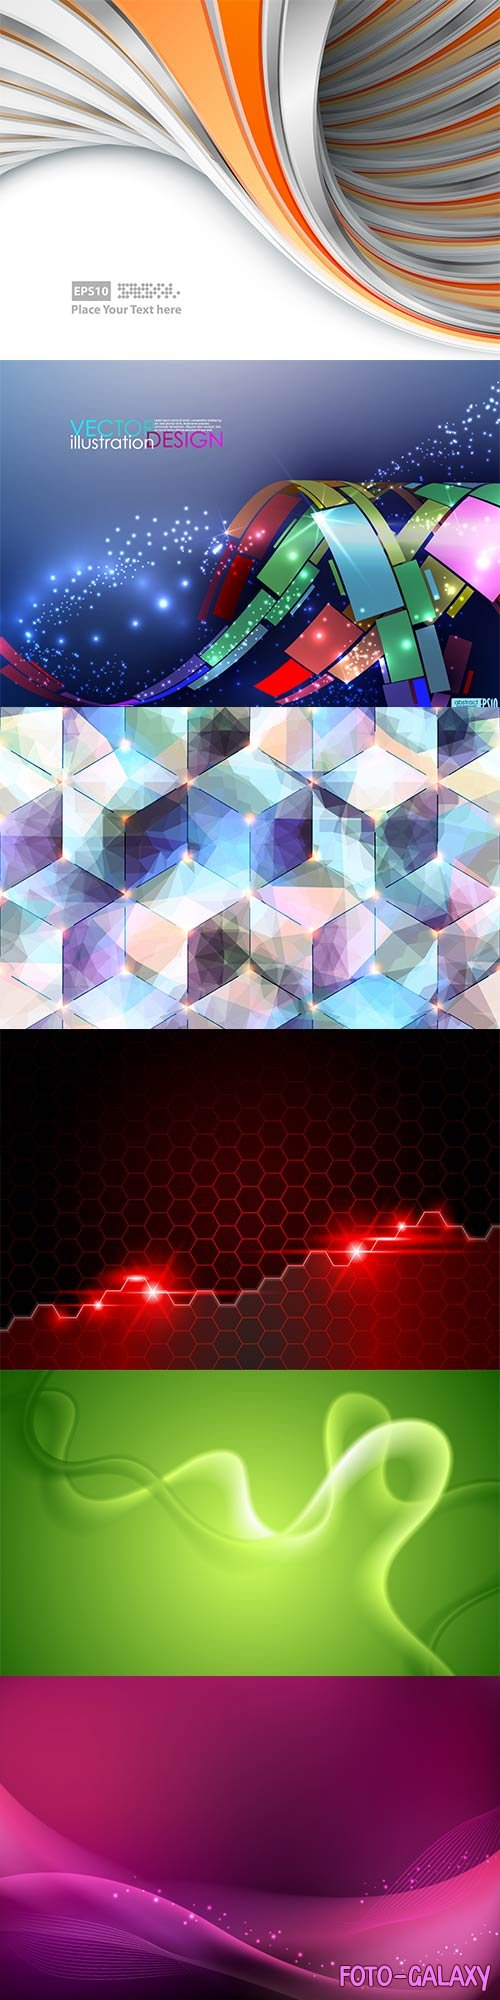 Bright colorful abstract backgrounds vector - 90